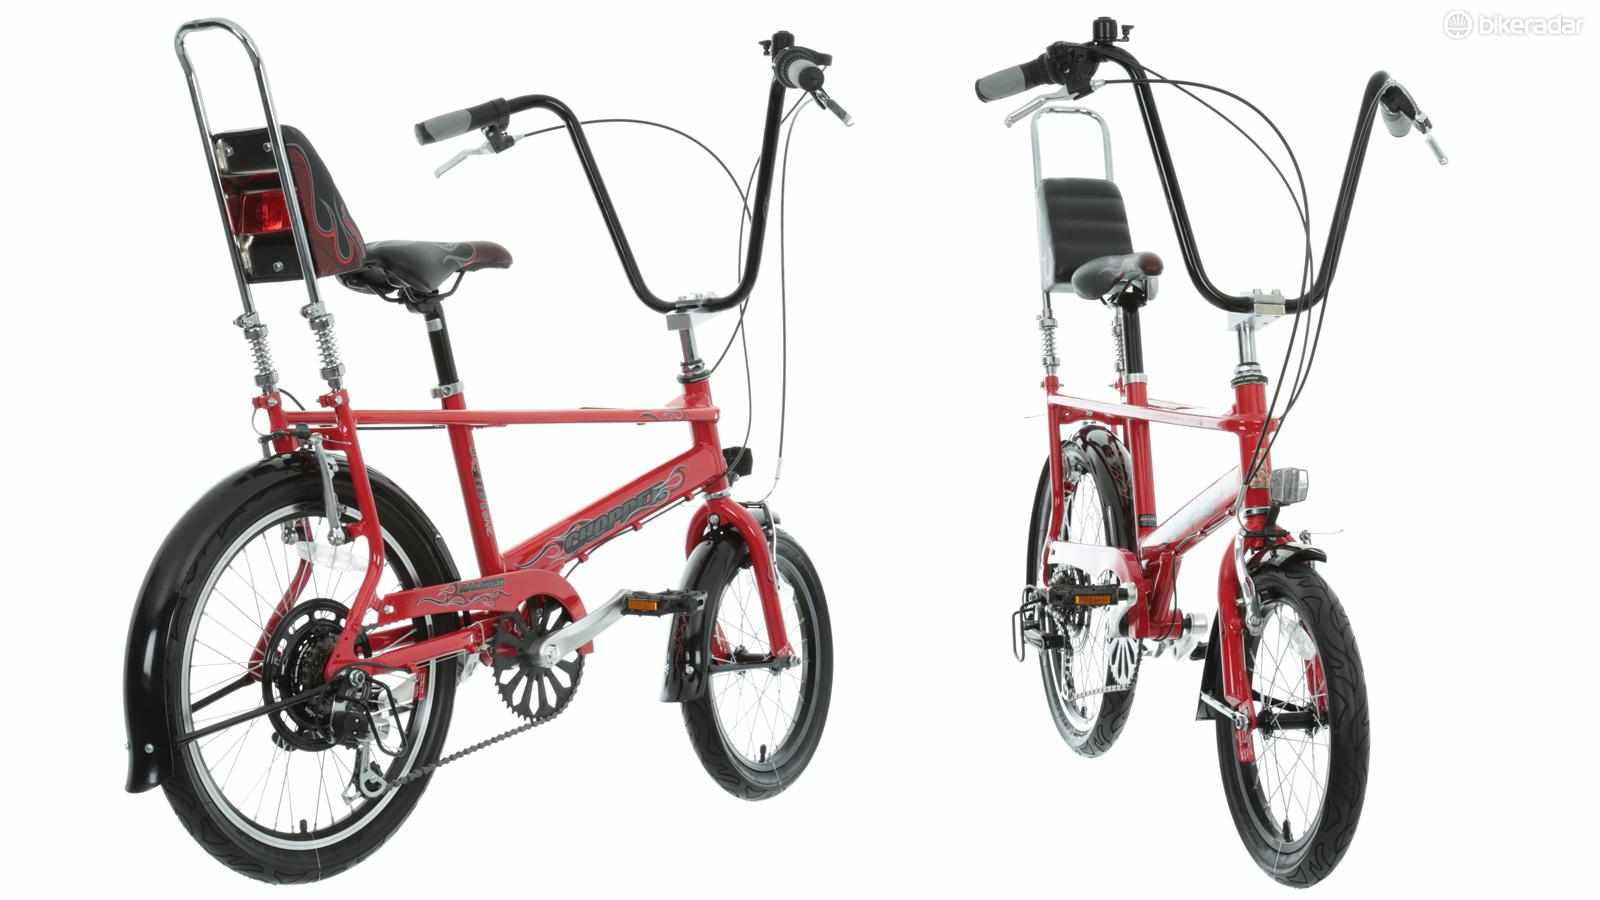 The Raleigh Chopper is one of the most iconic bike designs of the 20th century